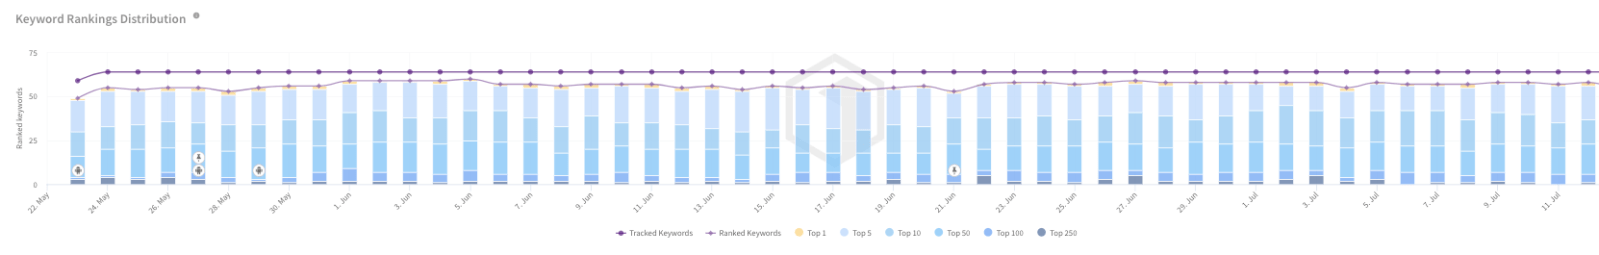 Keywords Rankings Distribution over time by TheTool